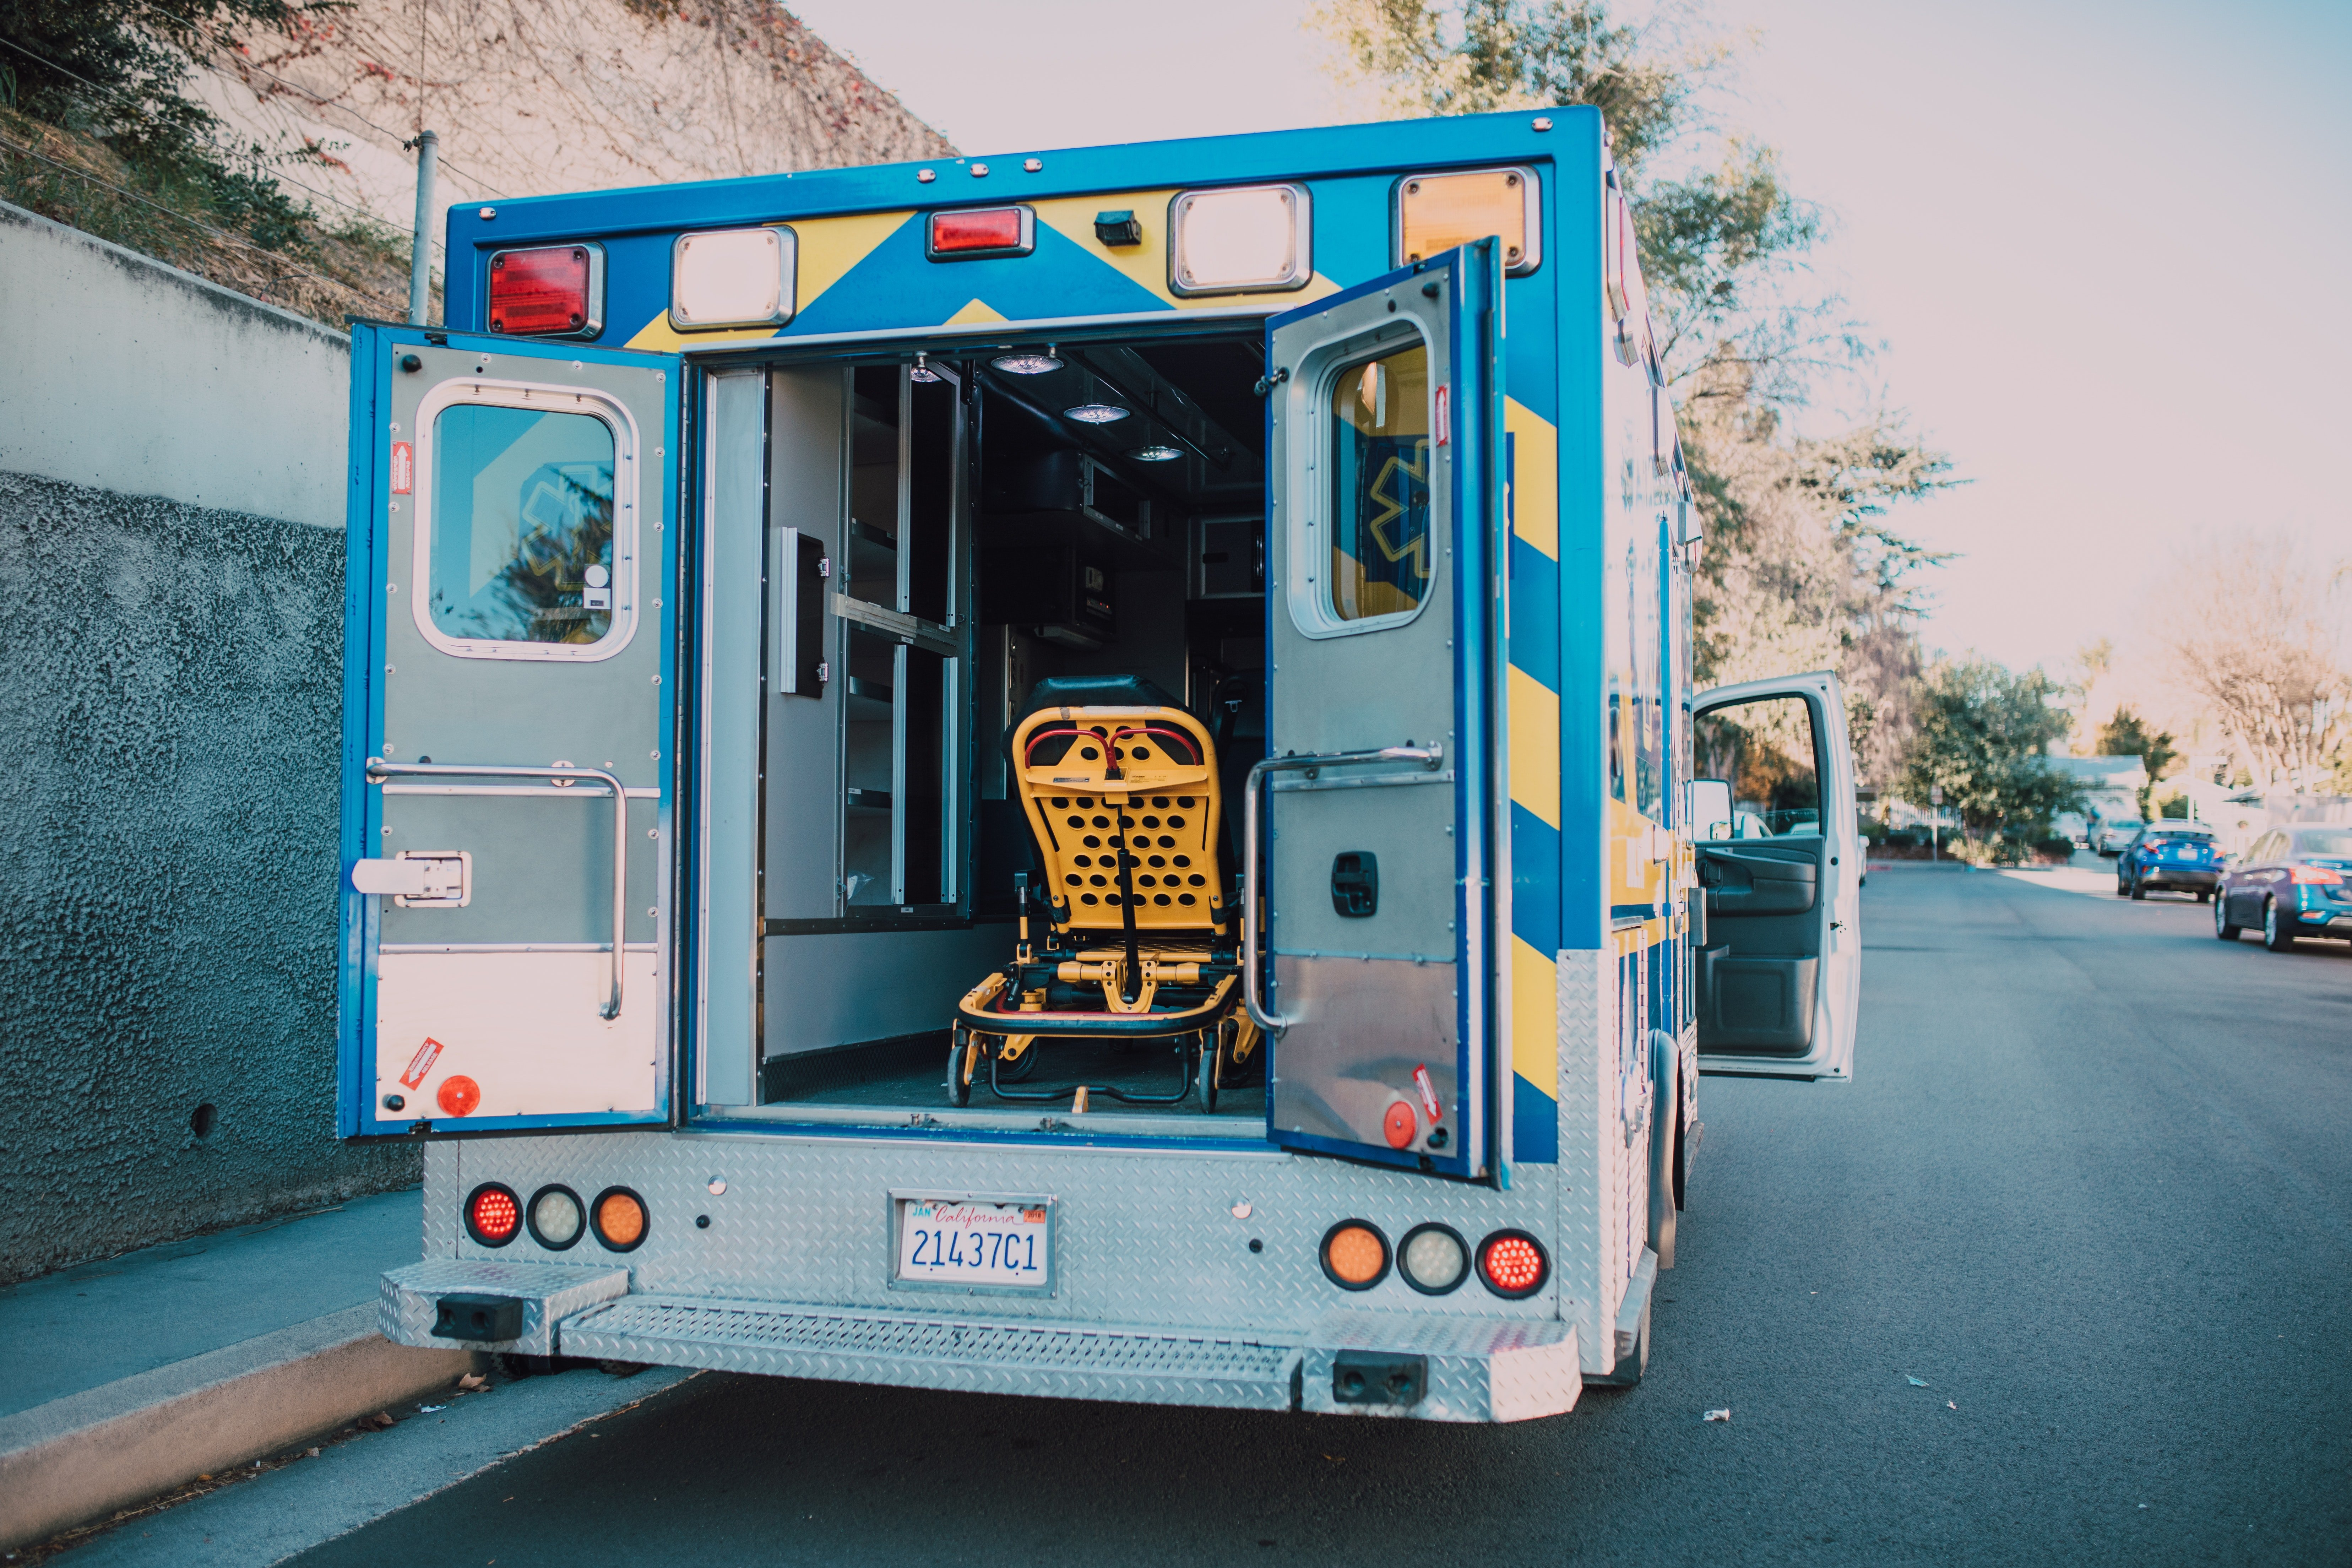 An ambulance with its back doors open. | Photo: Pexels